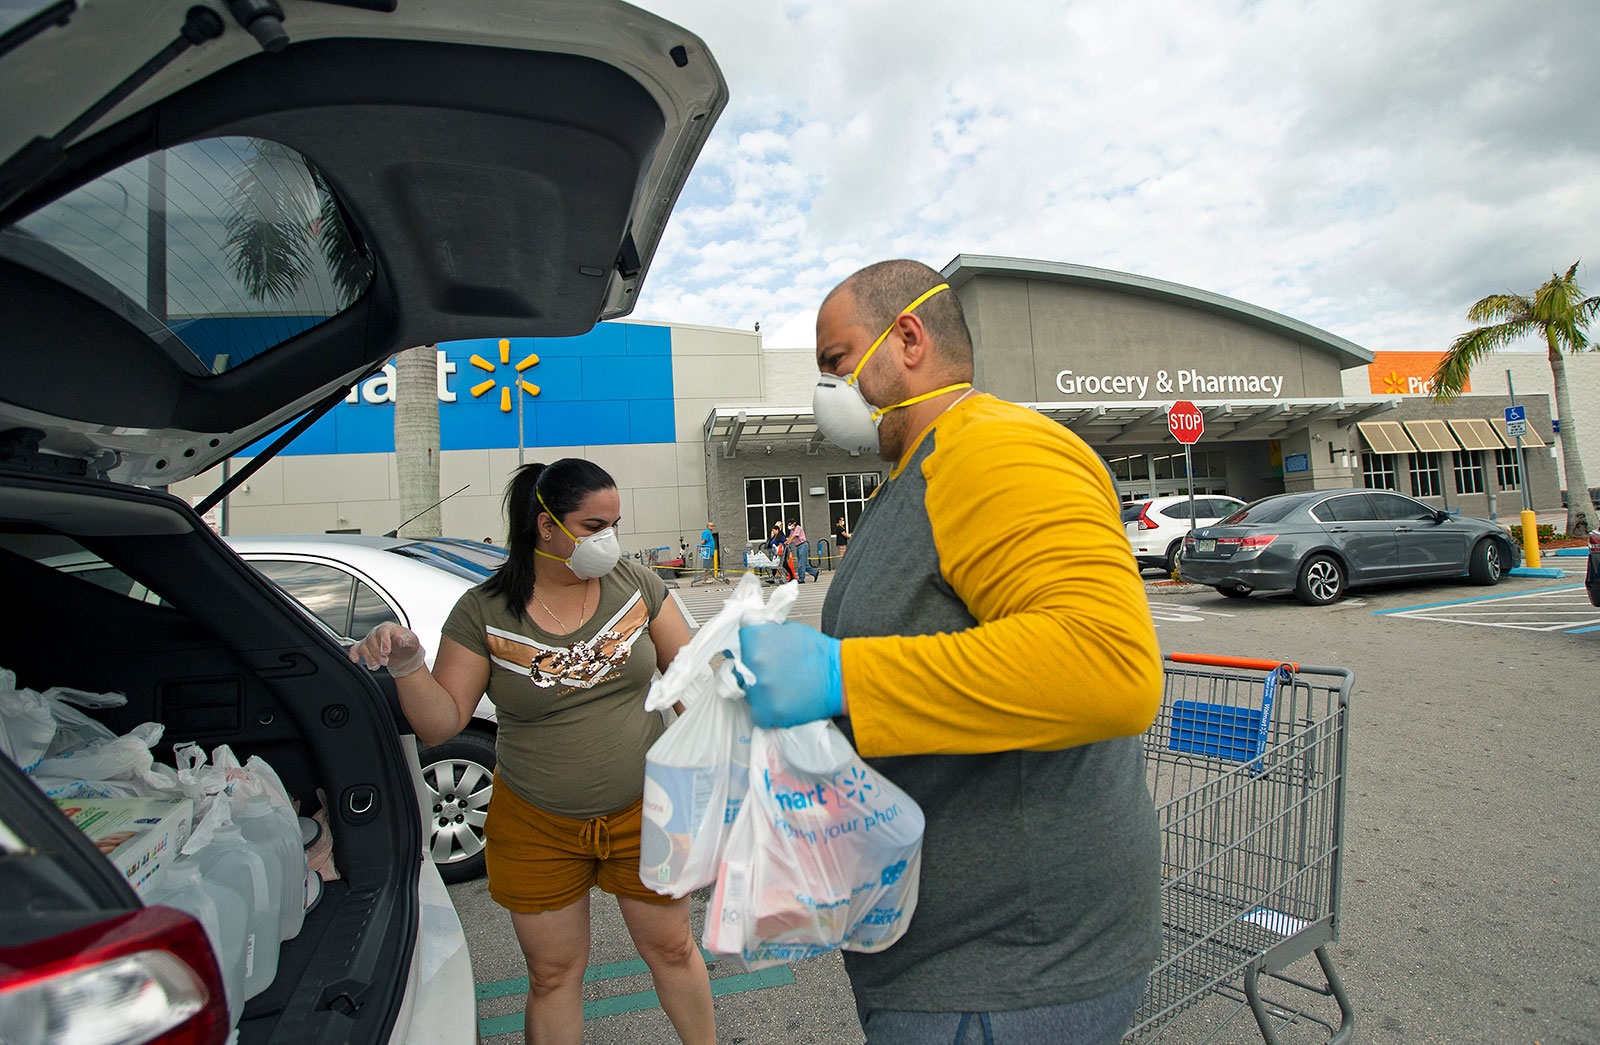 Joel Porro and Lizz Hernandez wear gloves and protective masks as they put bags in the trunk of their car after shopping at Walmart Supercenter in Miami.